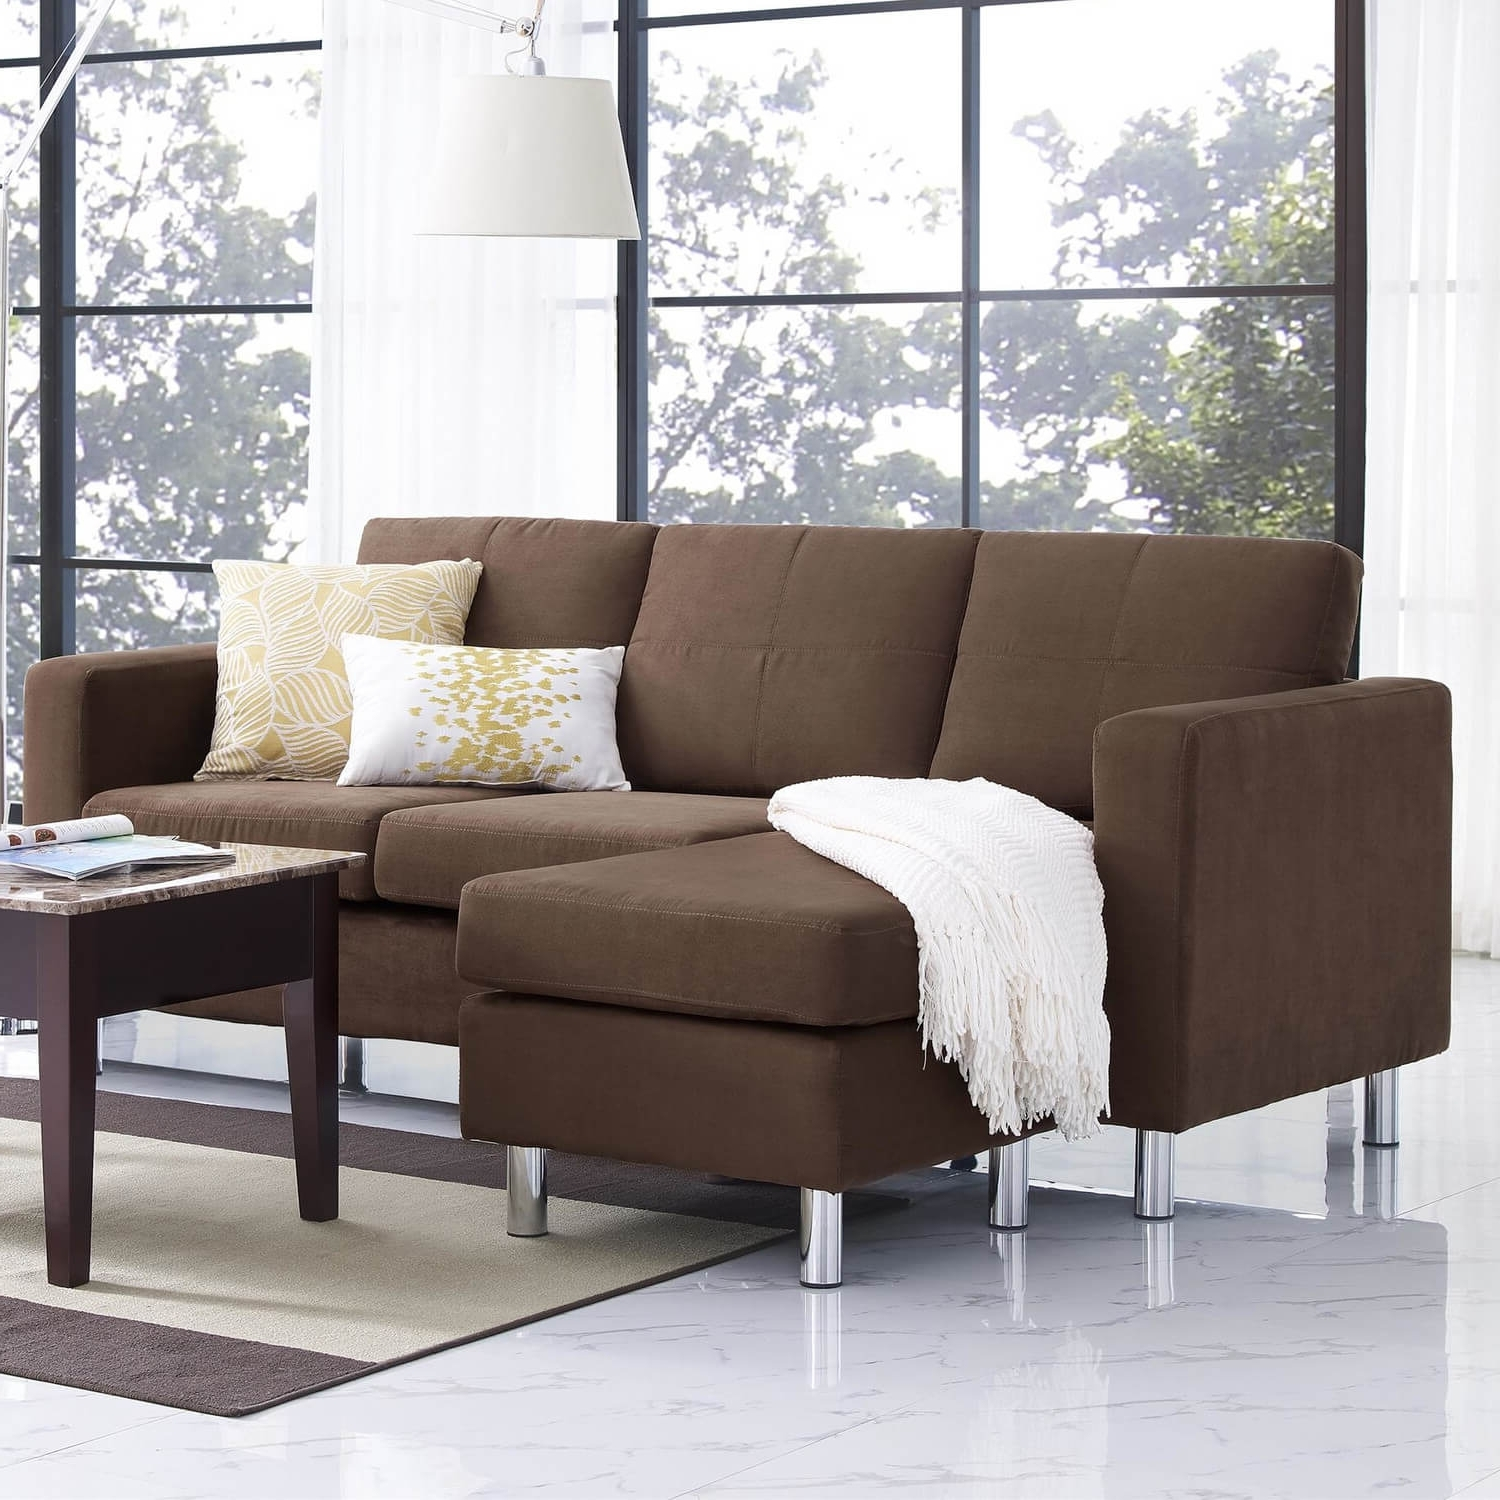 Most Current Sectional Sofas Under 500 Inside 40 Cheap Sectional Sofas Under $500 For  (View 3 of 15)